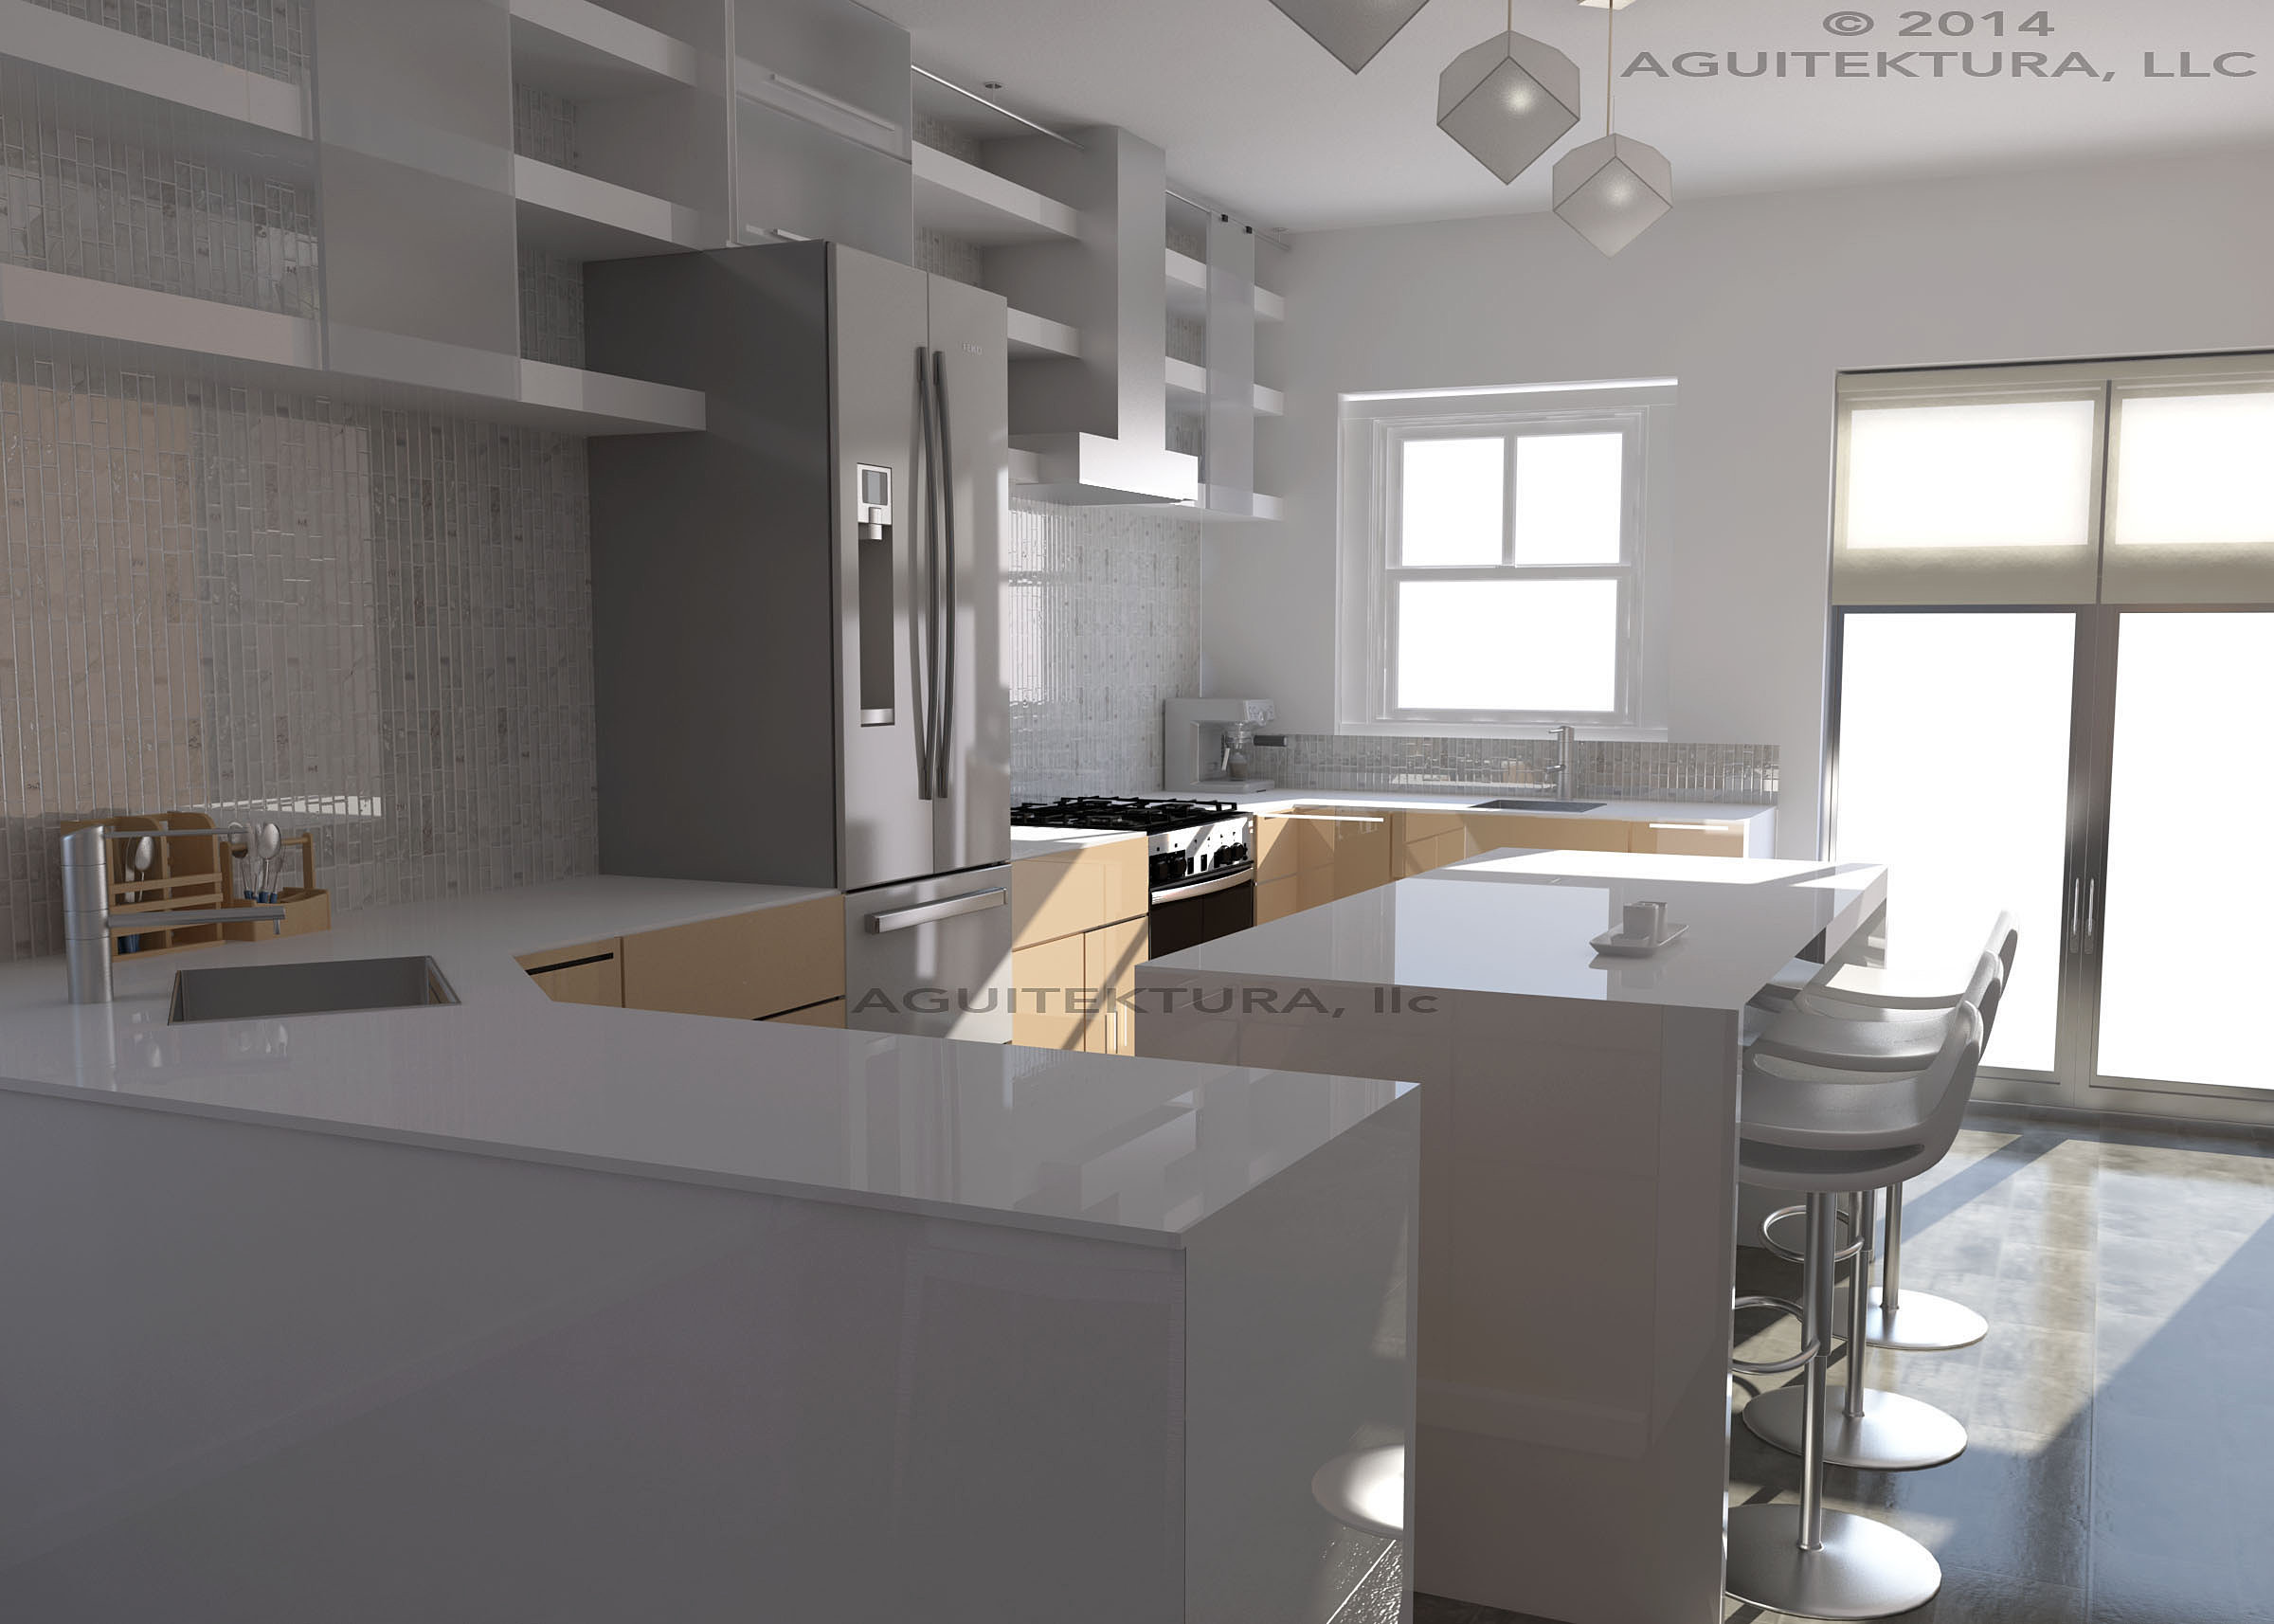 Aguitektura Llc Residential Commercial Consulting Services Kitchen